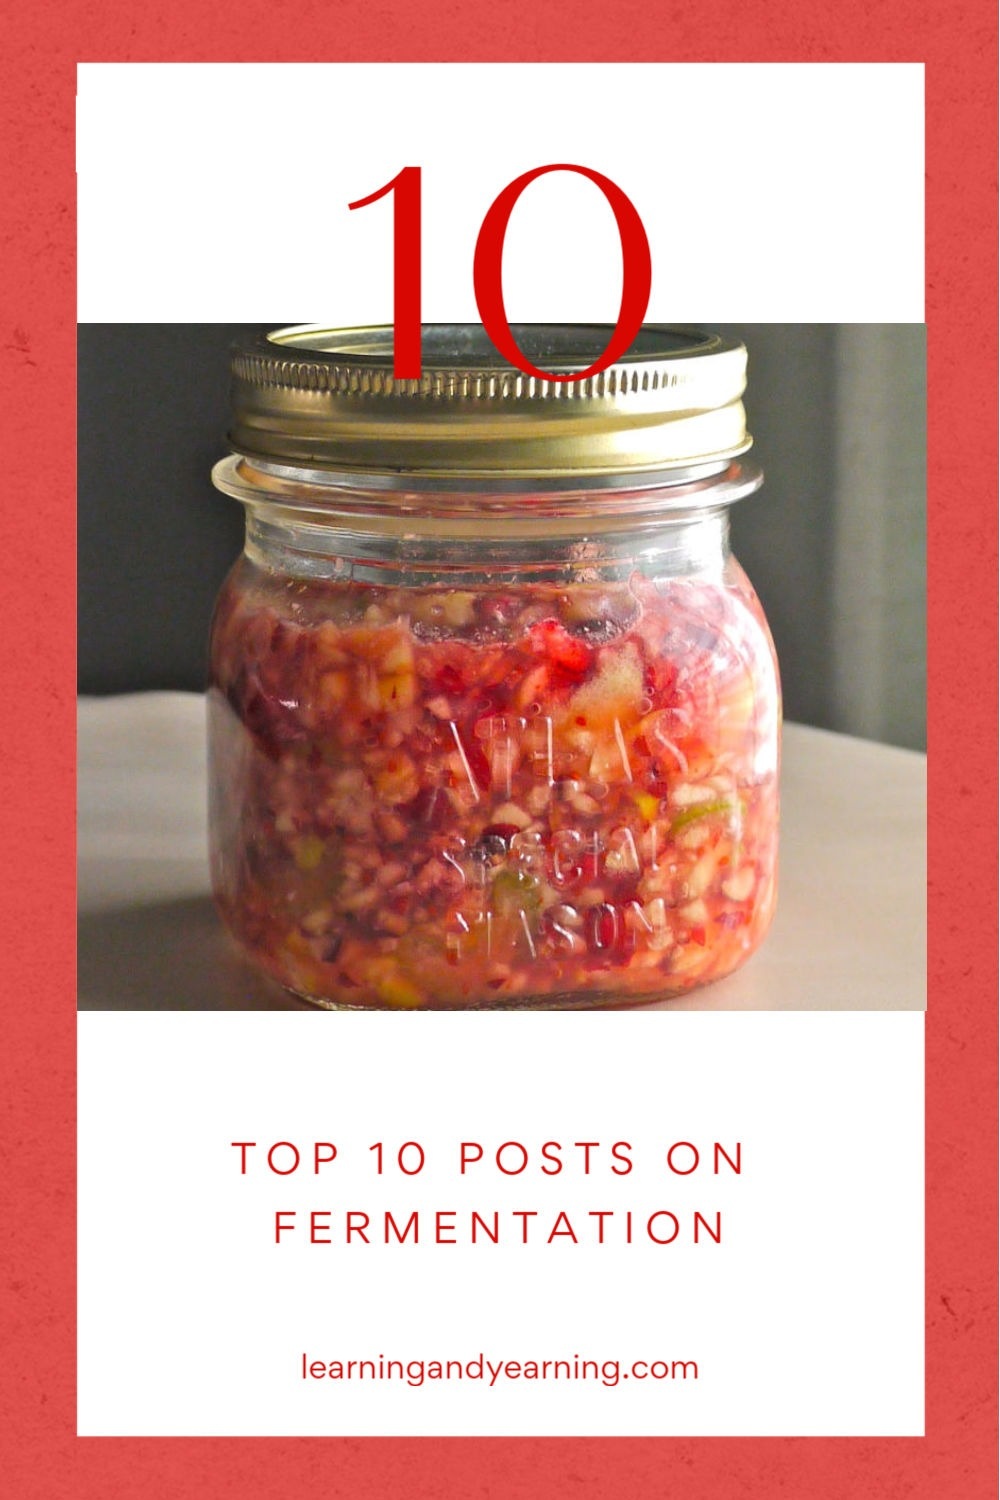 Learning And Yearning's Top 10 Posts on Fermentation